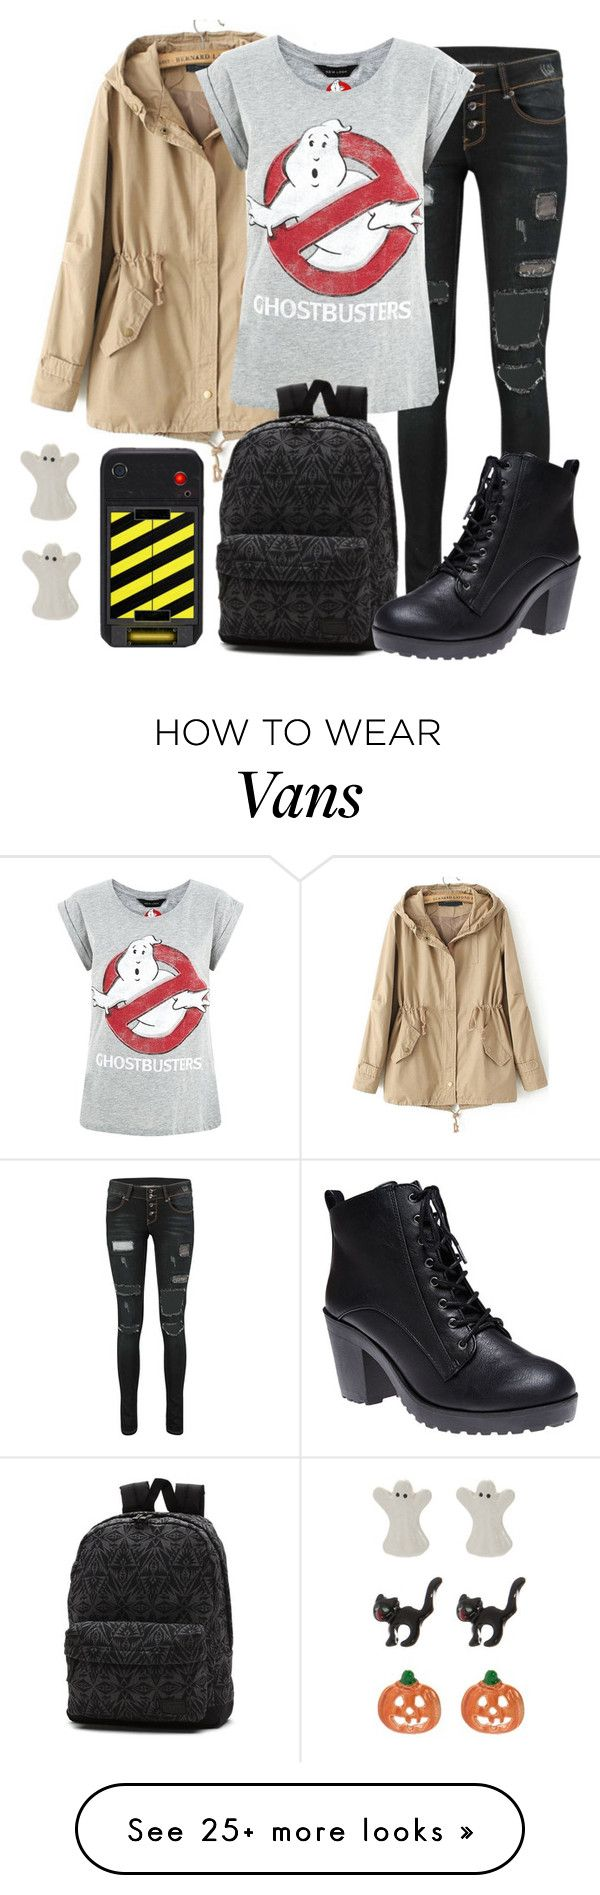 """""""who ya gonna call?"""" by waywardfandoms on Polyvore featuring Vans, Wet Seal, Kim Rogers and ghostbusters"""